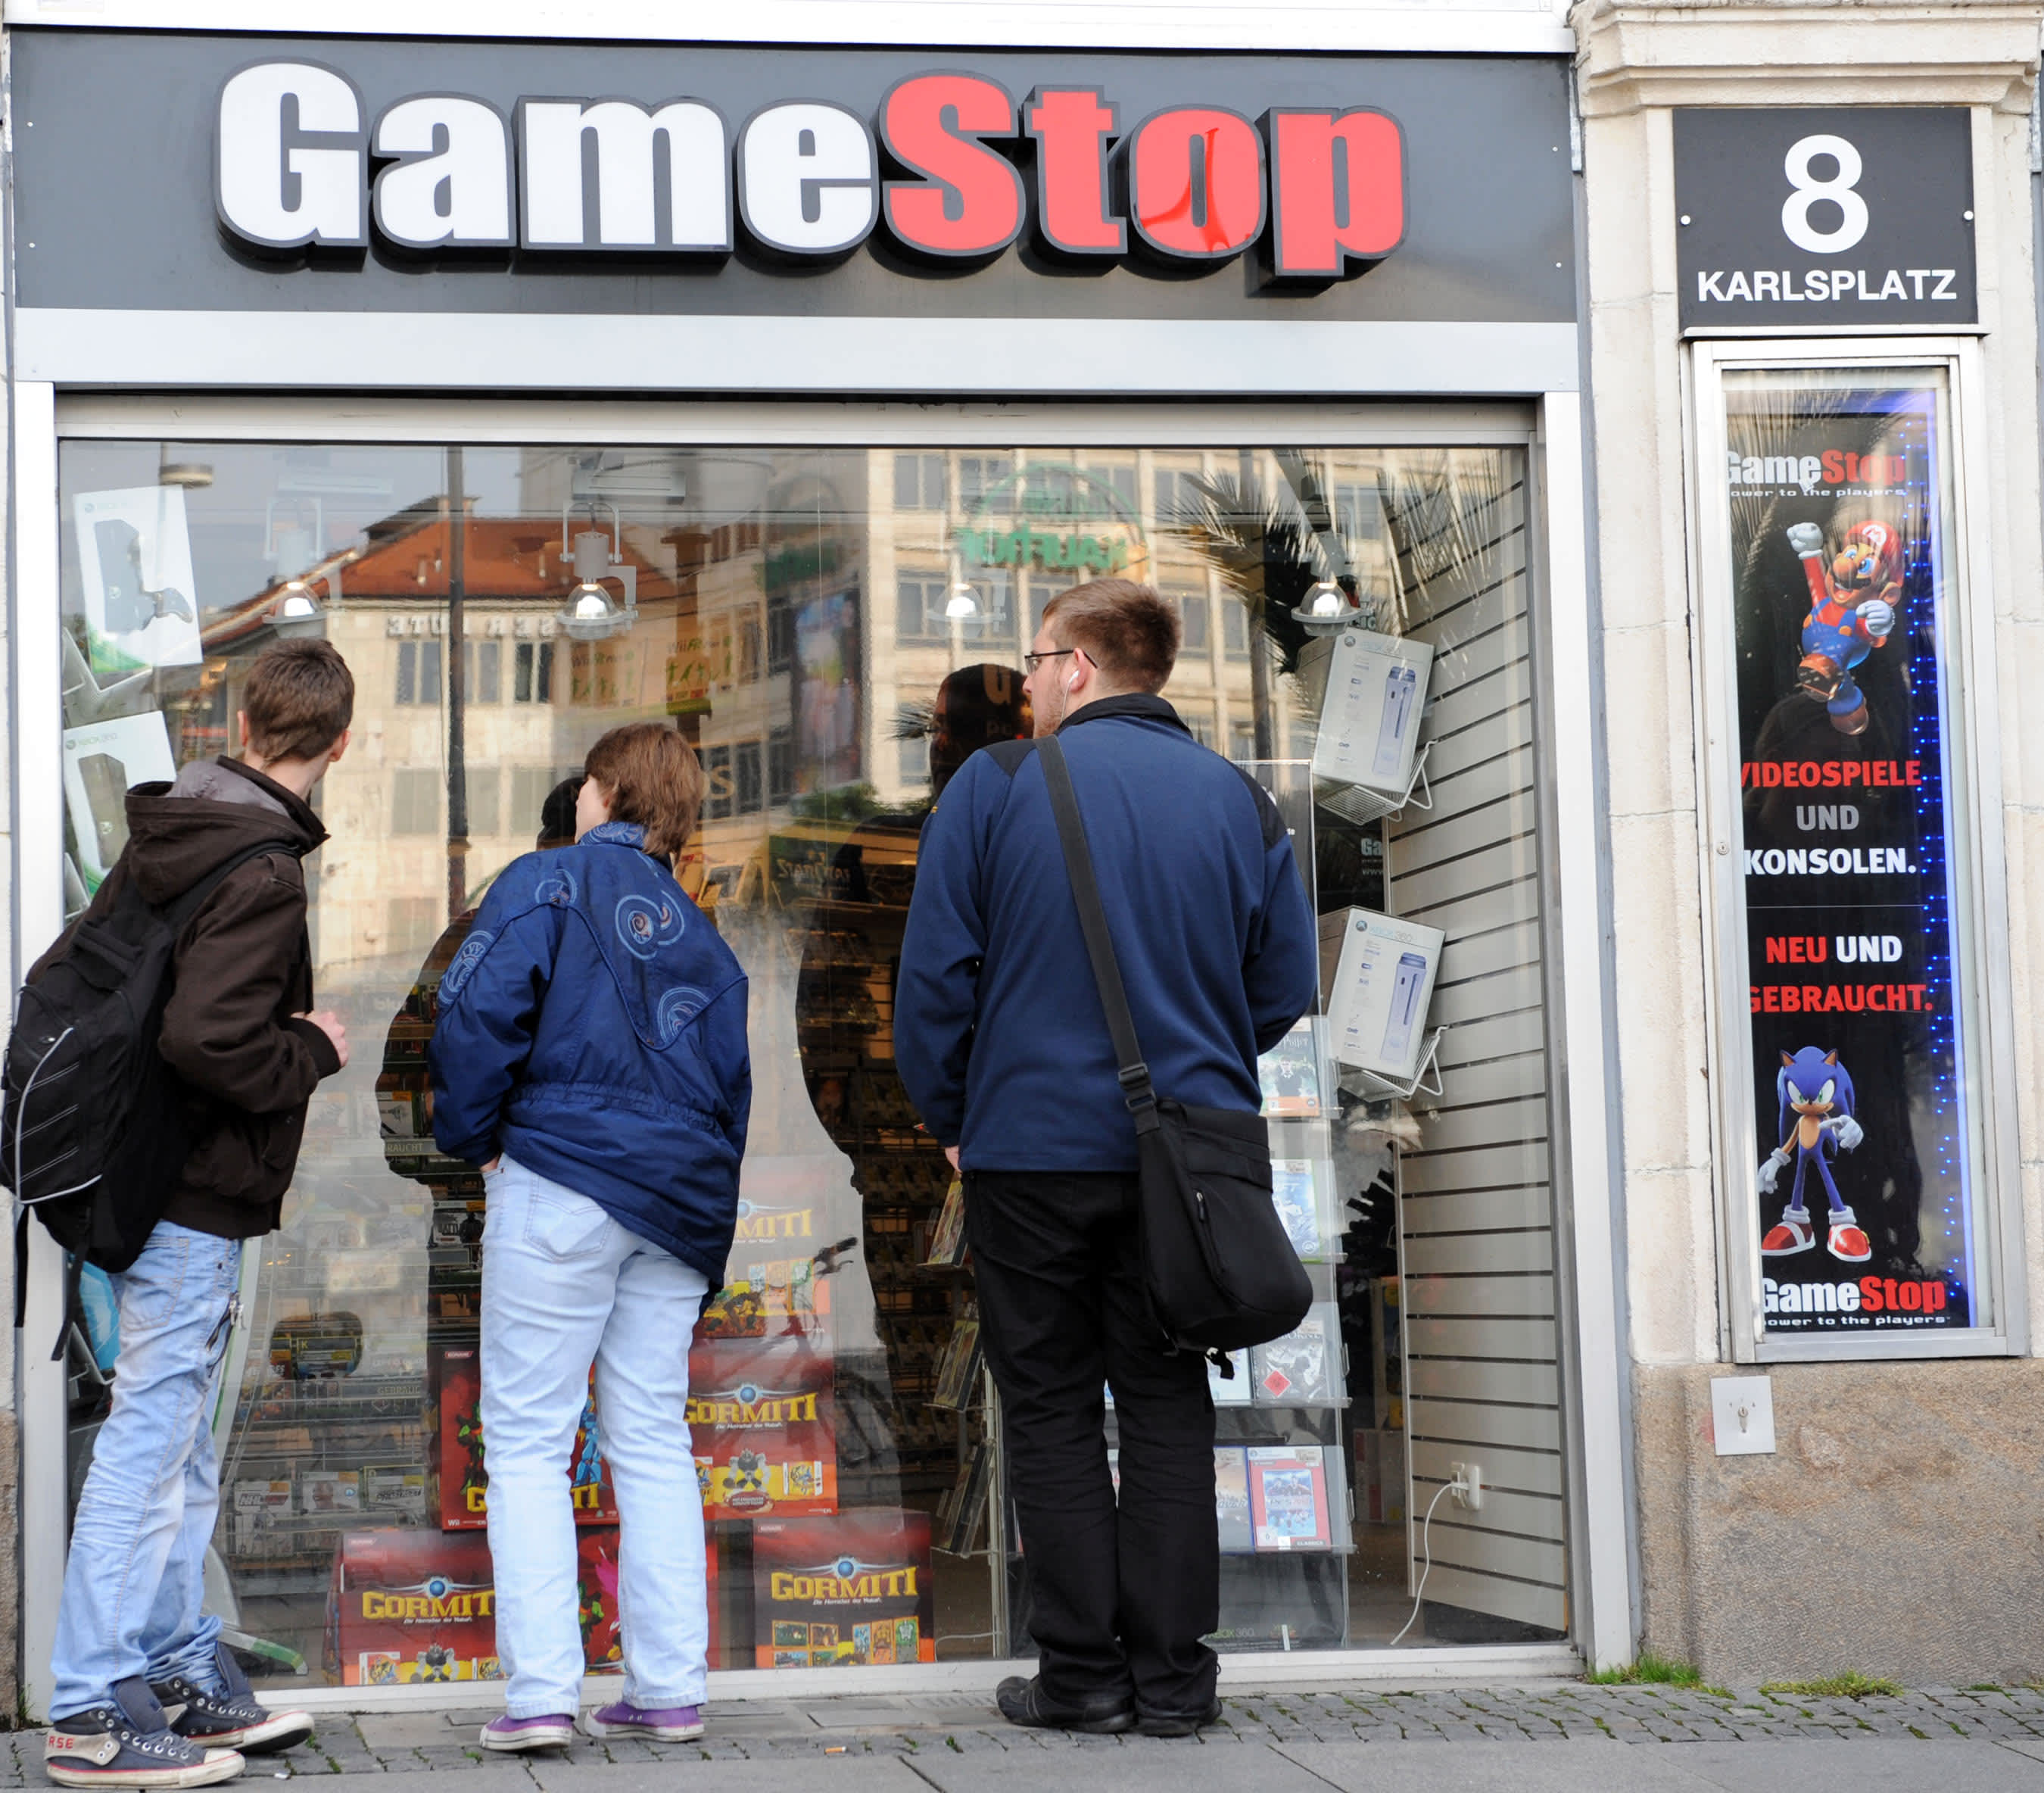 GameStop shares tank after earnings miss, cuts sales forecast